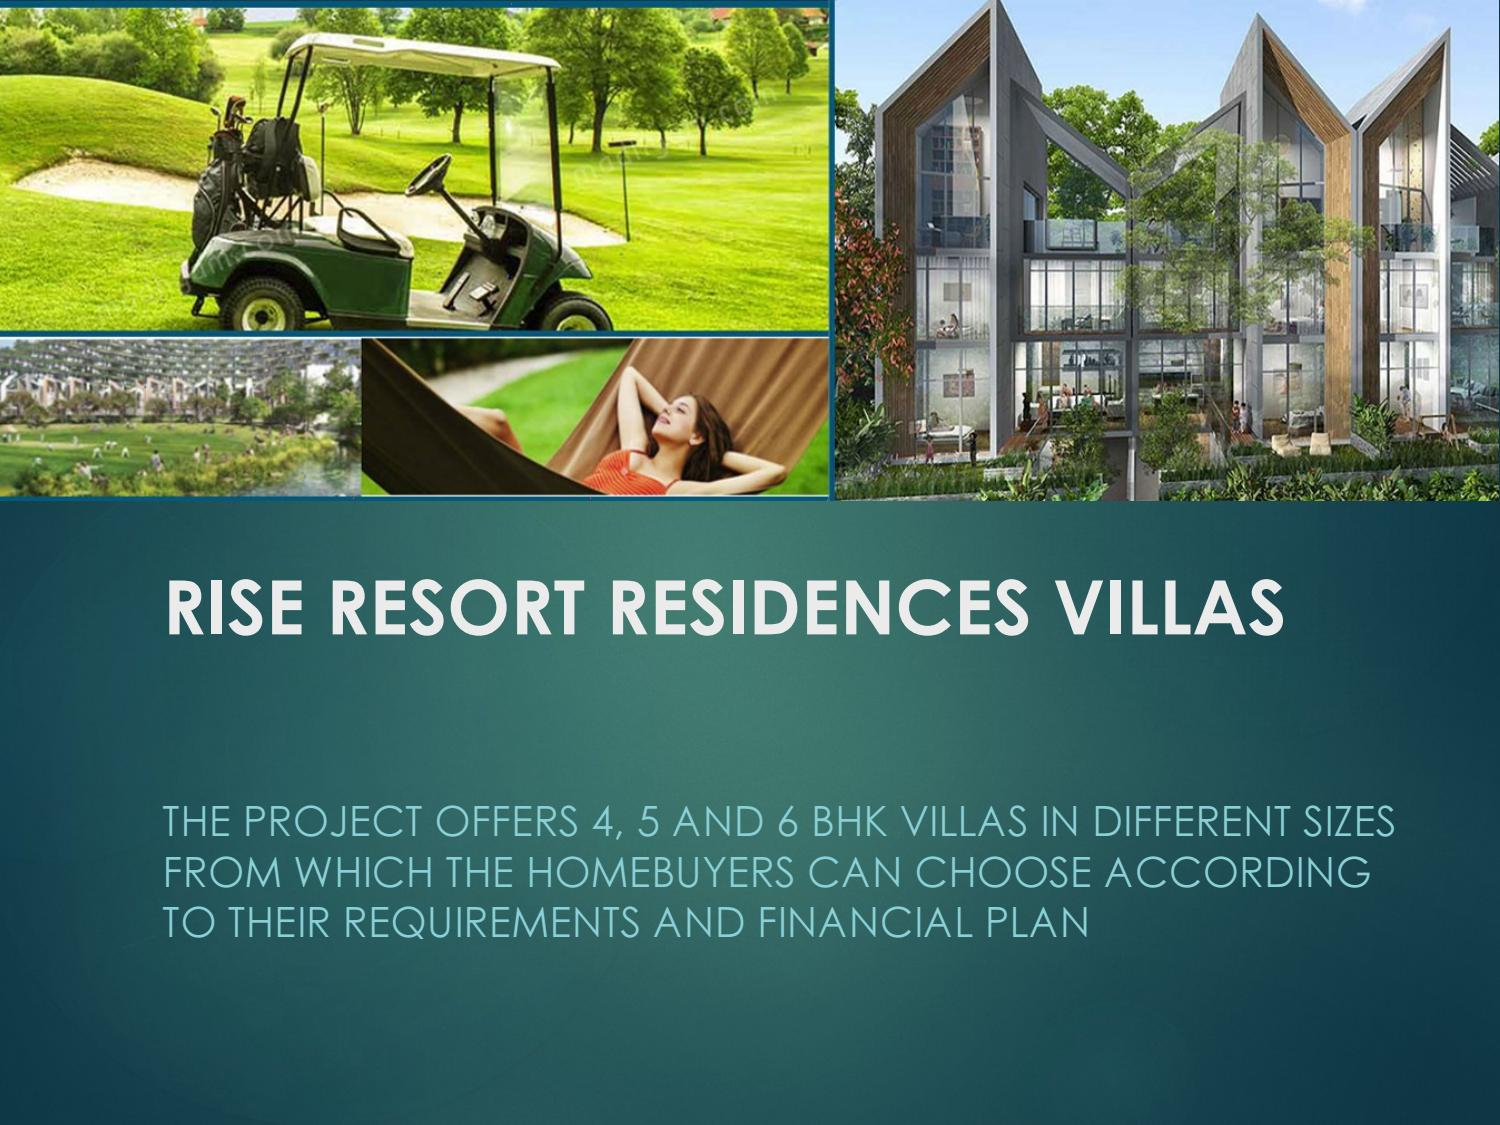 rise resort residences villas sale classic villa by anjaliseo2020 issuu rise resort residences villas sale